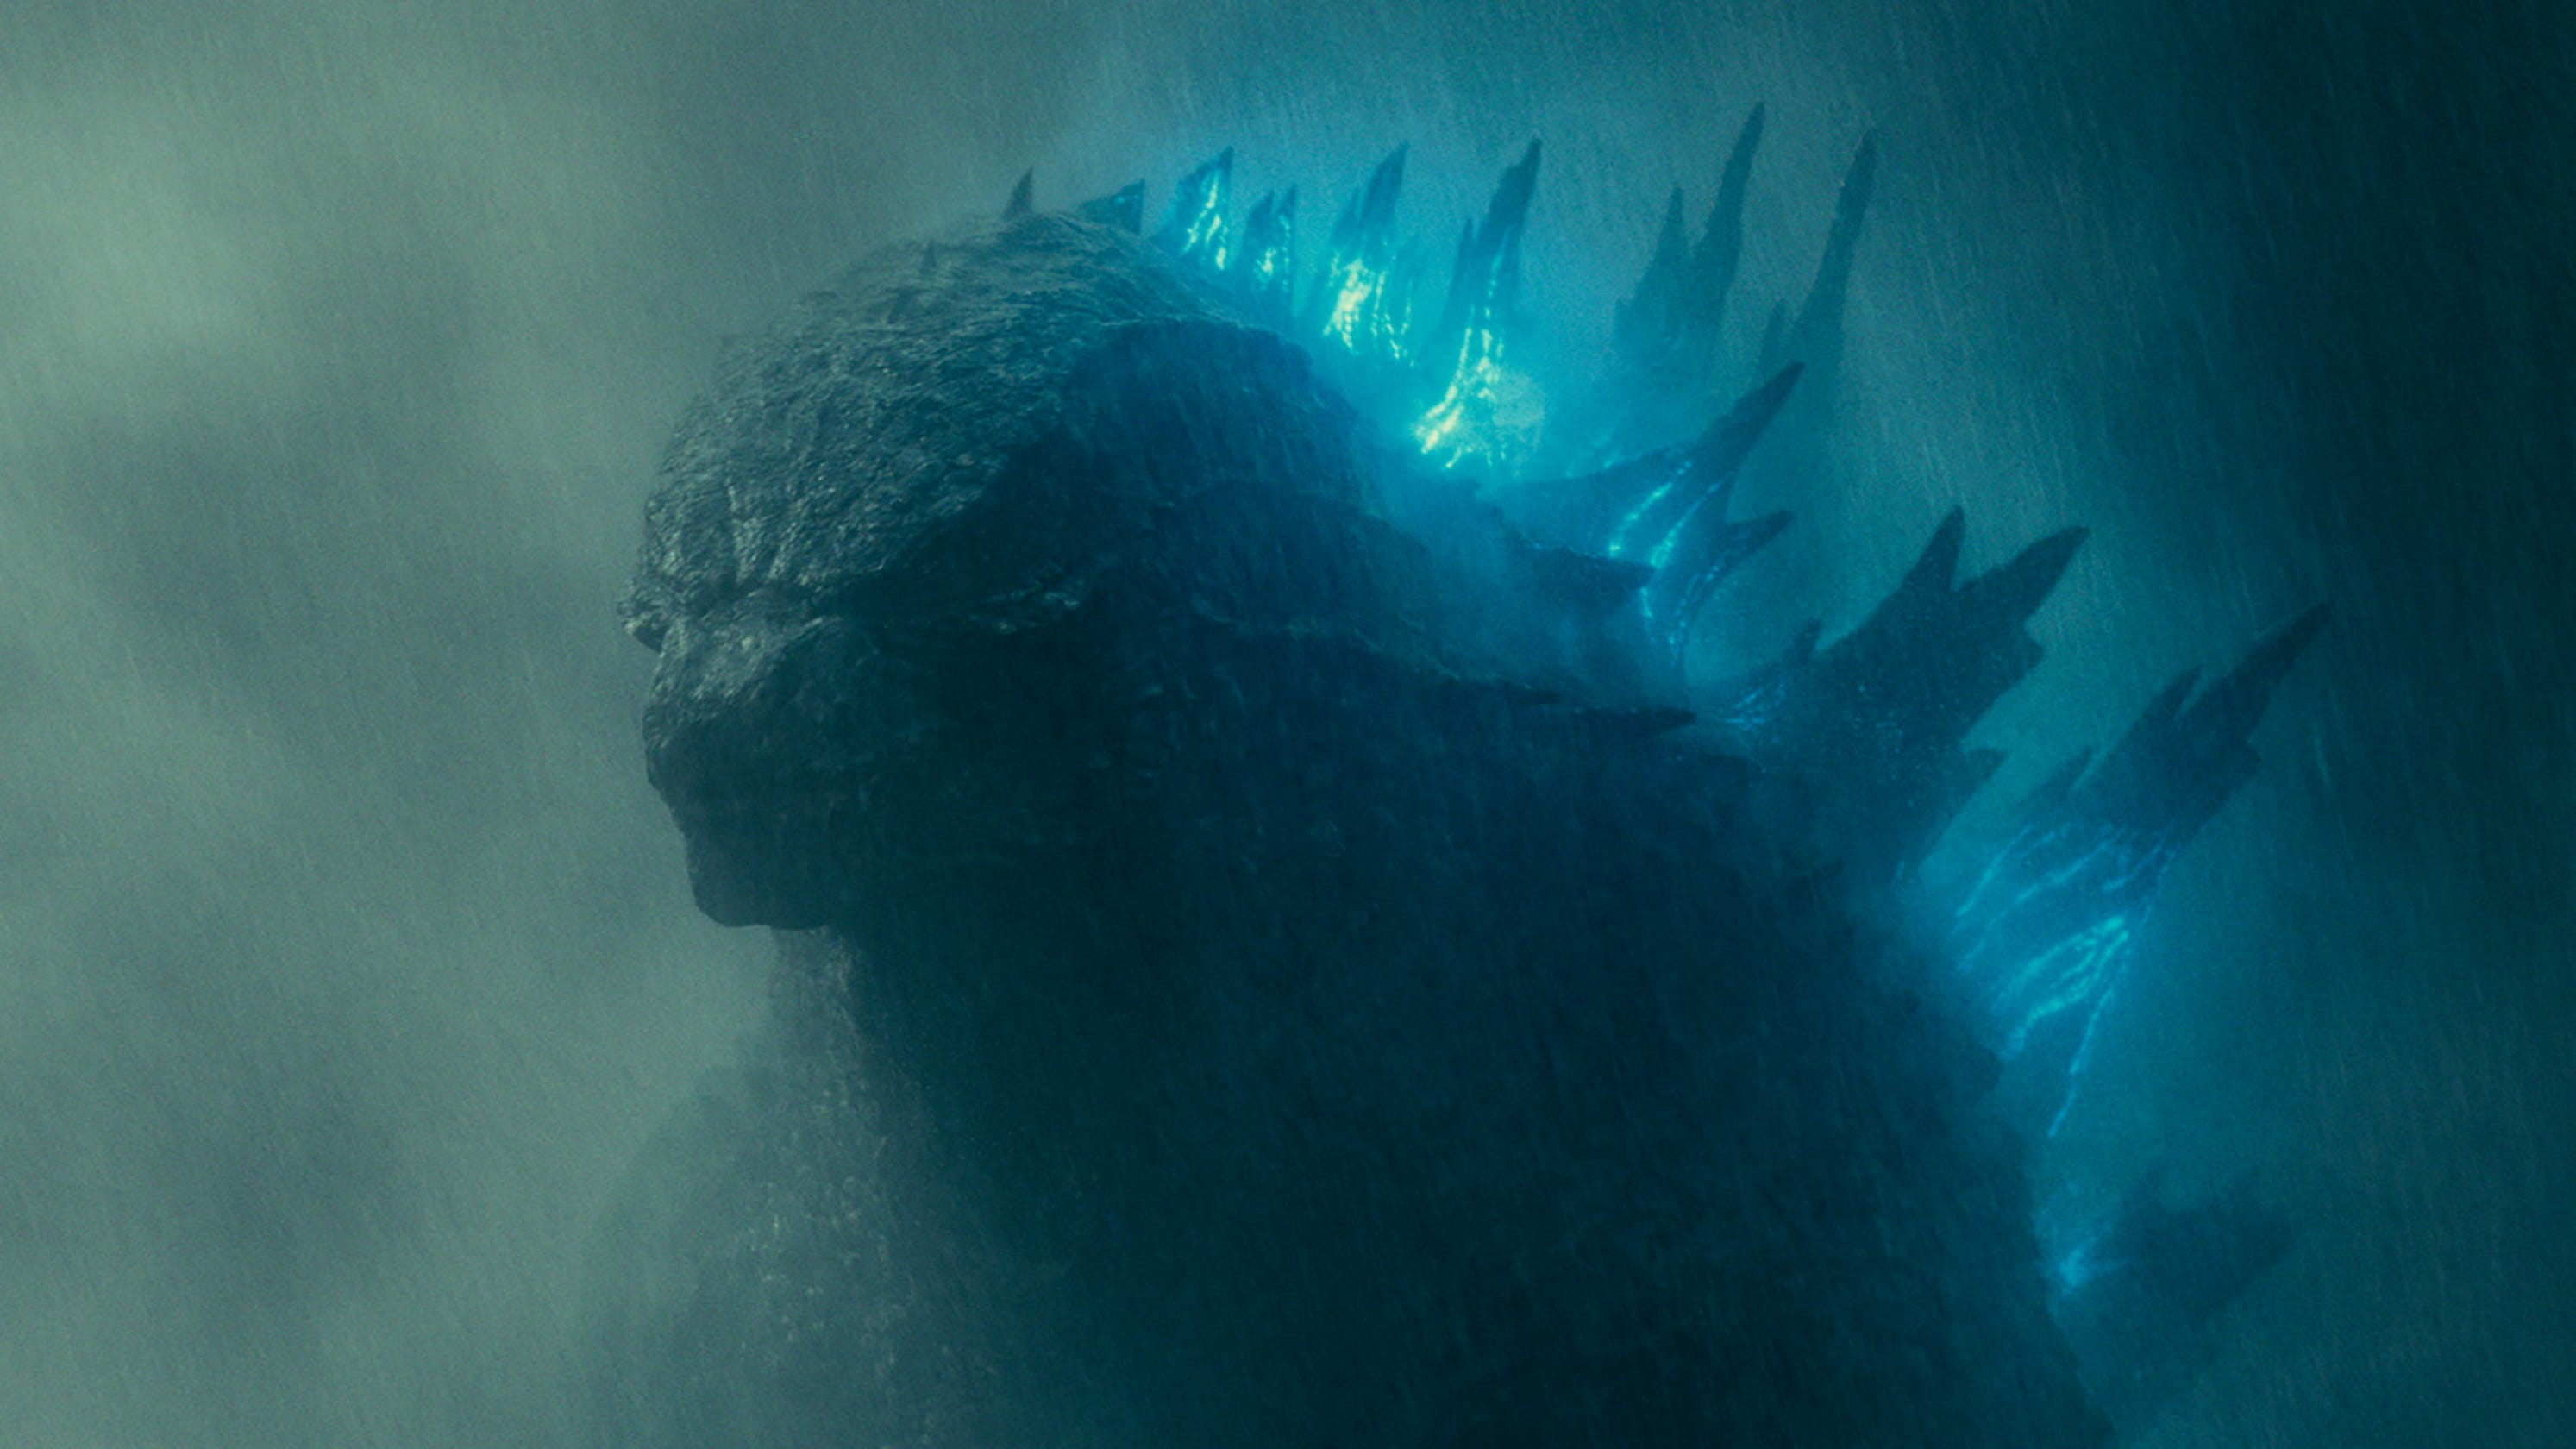 Godzilla: King of the Monsters' teases King Kong matchup